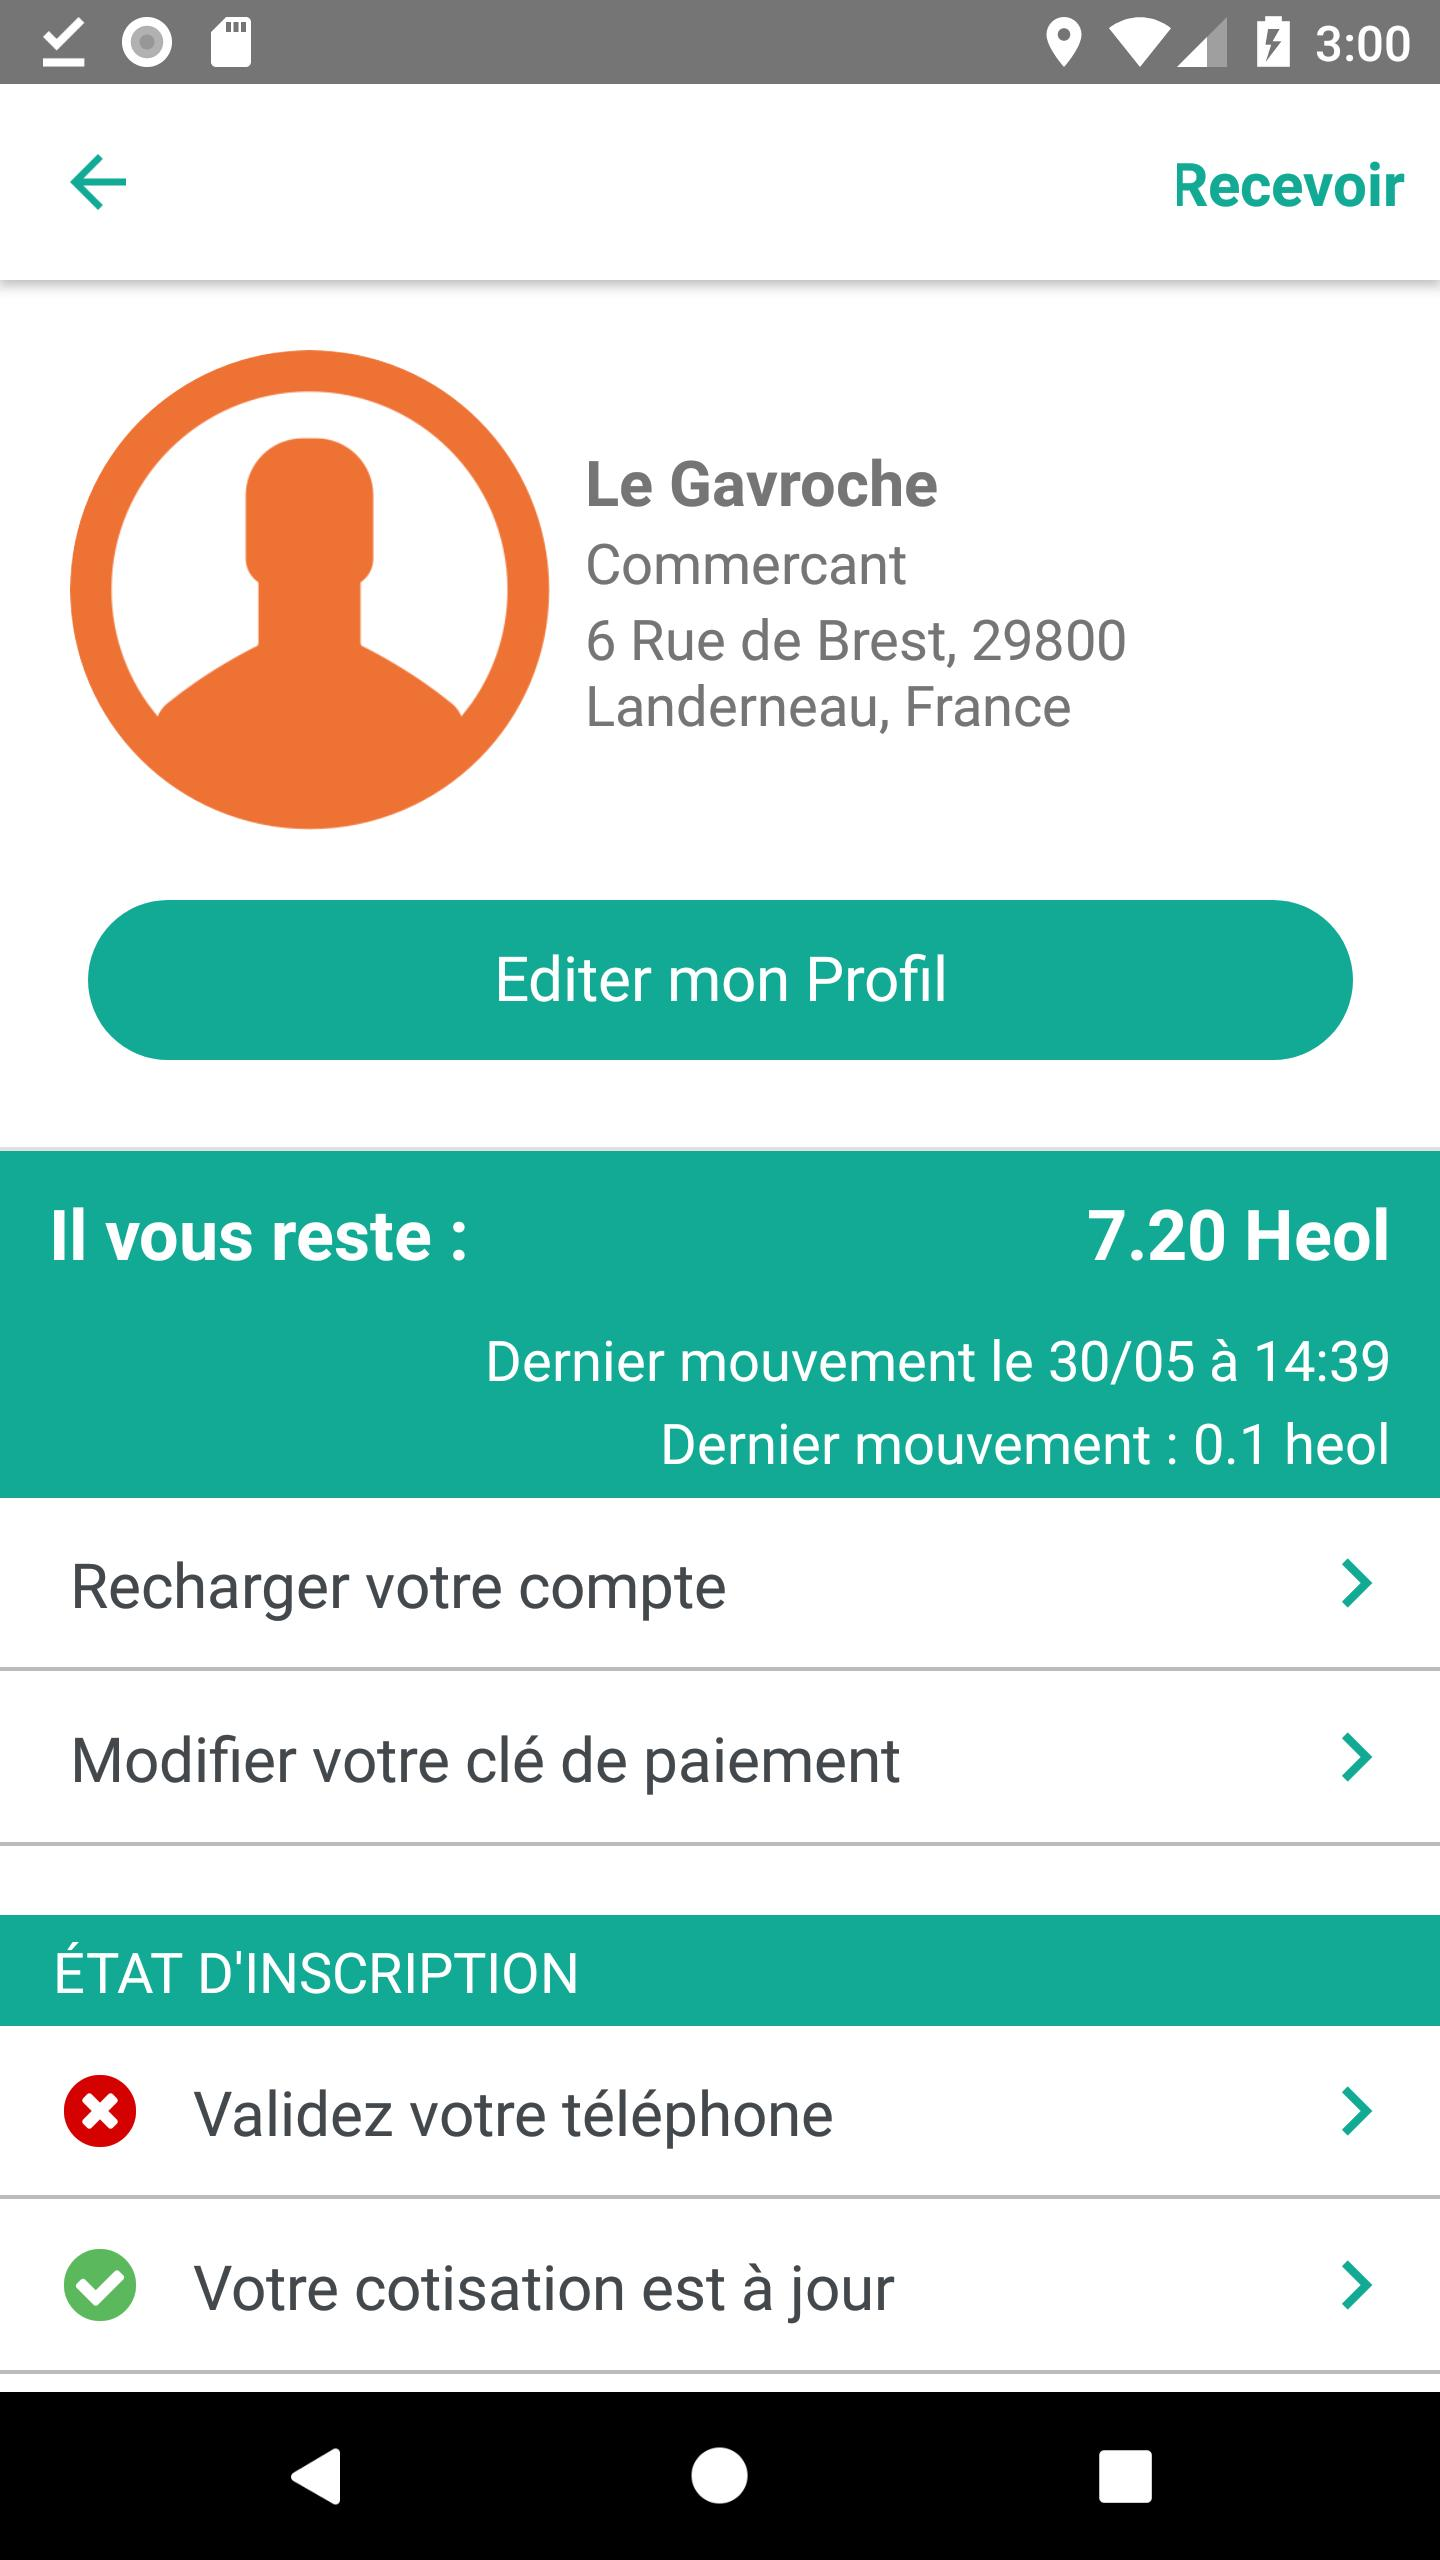 Recevoir Roblox Microsoft Store Fr Fr Heol For Android Apk Download